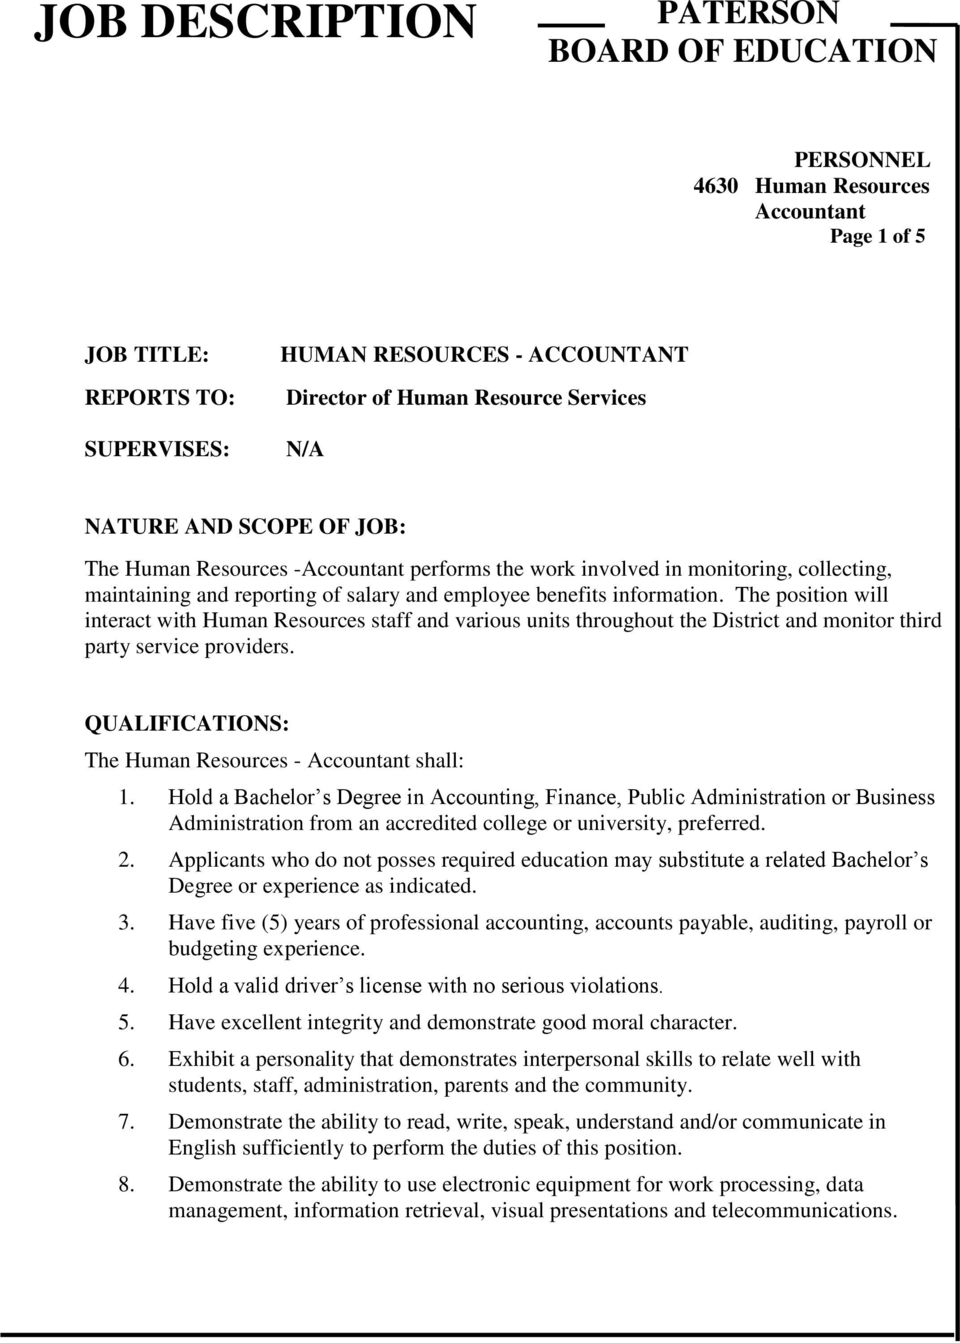 The position will interact with Human Resources staff and various units throughout the District and monitor third party service providers. QUALIFICATIONS: The Human Resources - shall: 1.